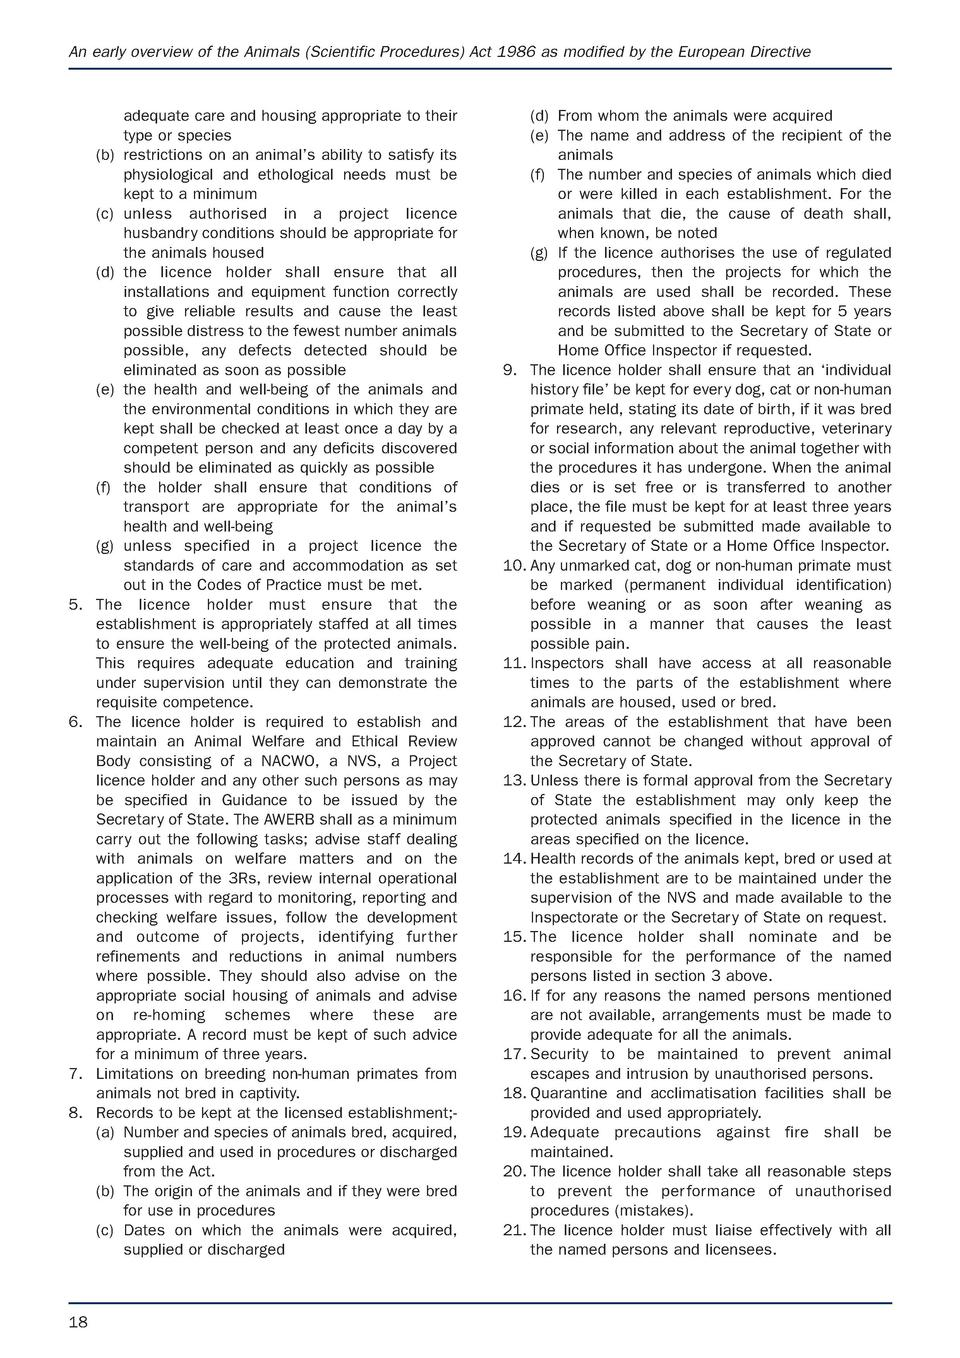 An early overview of the Animals  Scientific Procedures  Act 1986 as modified by the European Directive  5.  6.  7. 8.  18...